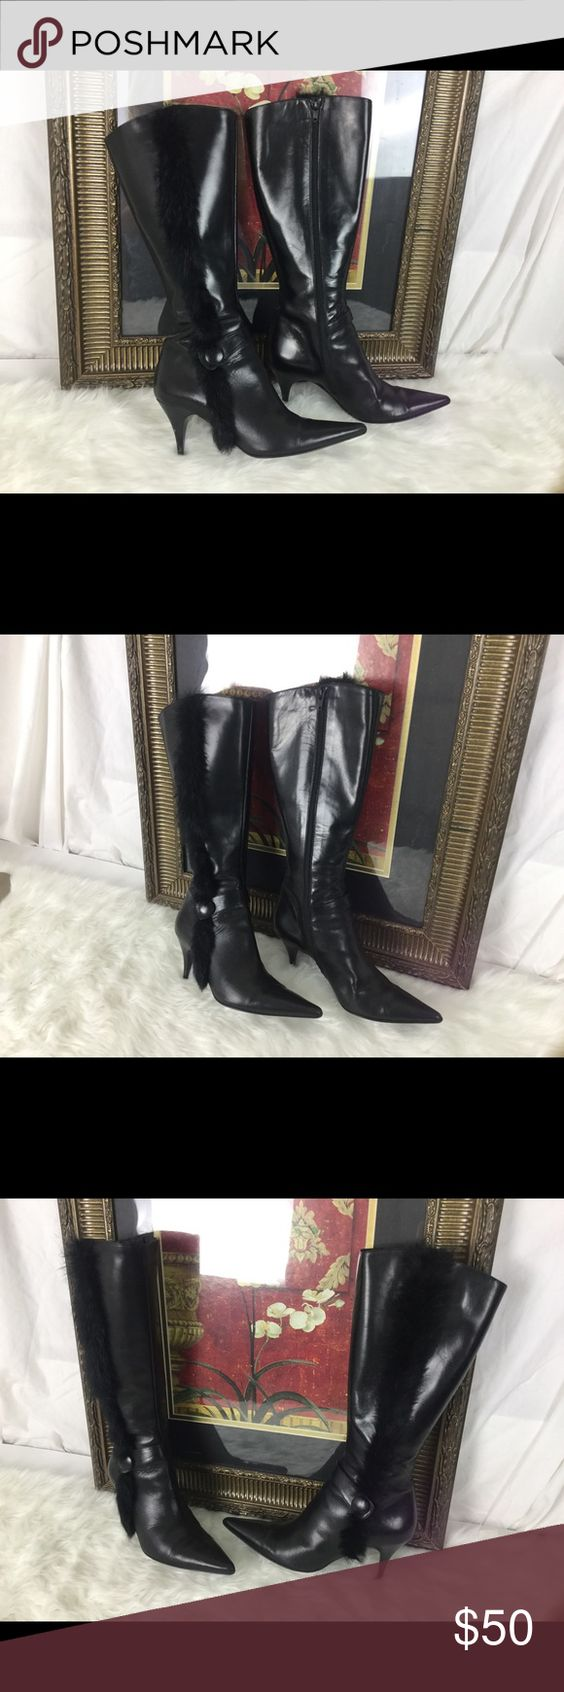 """🆕Listing. Charles David Boots.  Sz 7 ❤️ These Charles David leather boots are amazing.  Check out the fur.  Sz 7. The circumference of the top of the boot is 6.5"""". Heel height is 3"""".  In good condition.  The heel might need a little work but all and all these are amazing. Charles David Shoes Heeled Boots"""